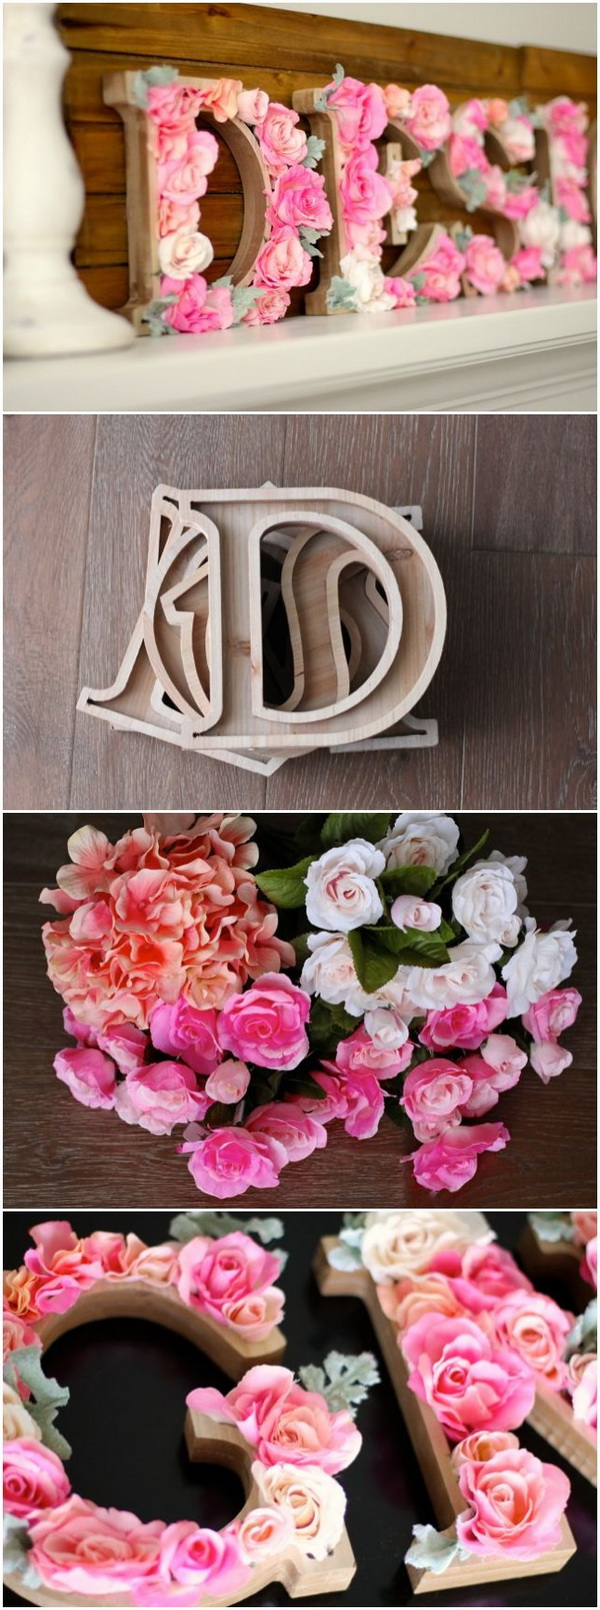 cool diy ideas tutorials for teenage girls bedroom decoration diy rustic letters with flowers a wood sign with flowers that says design it